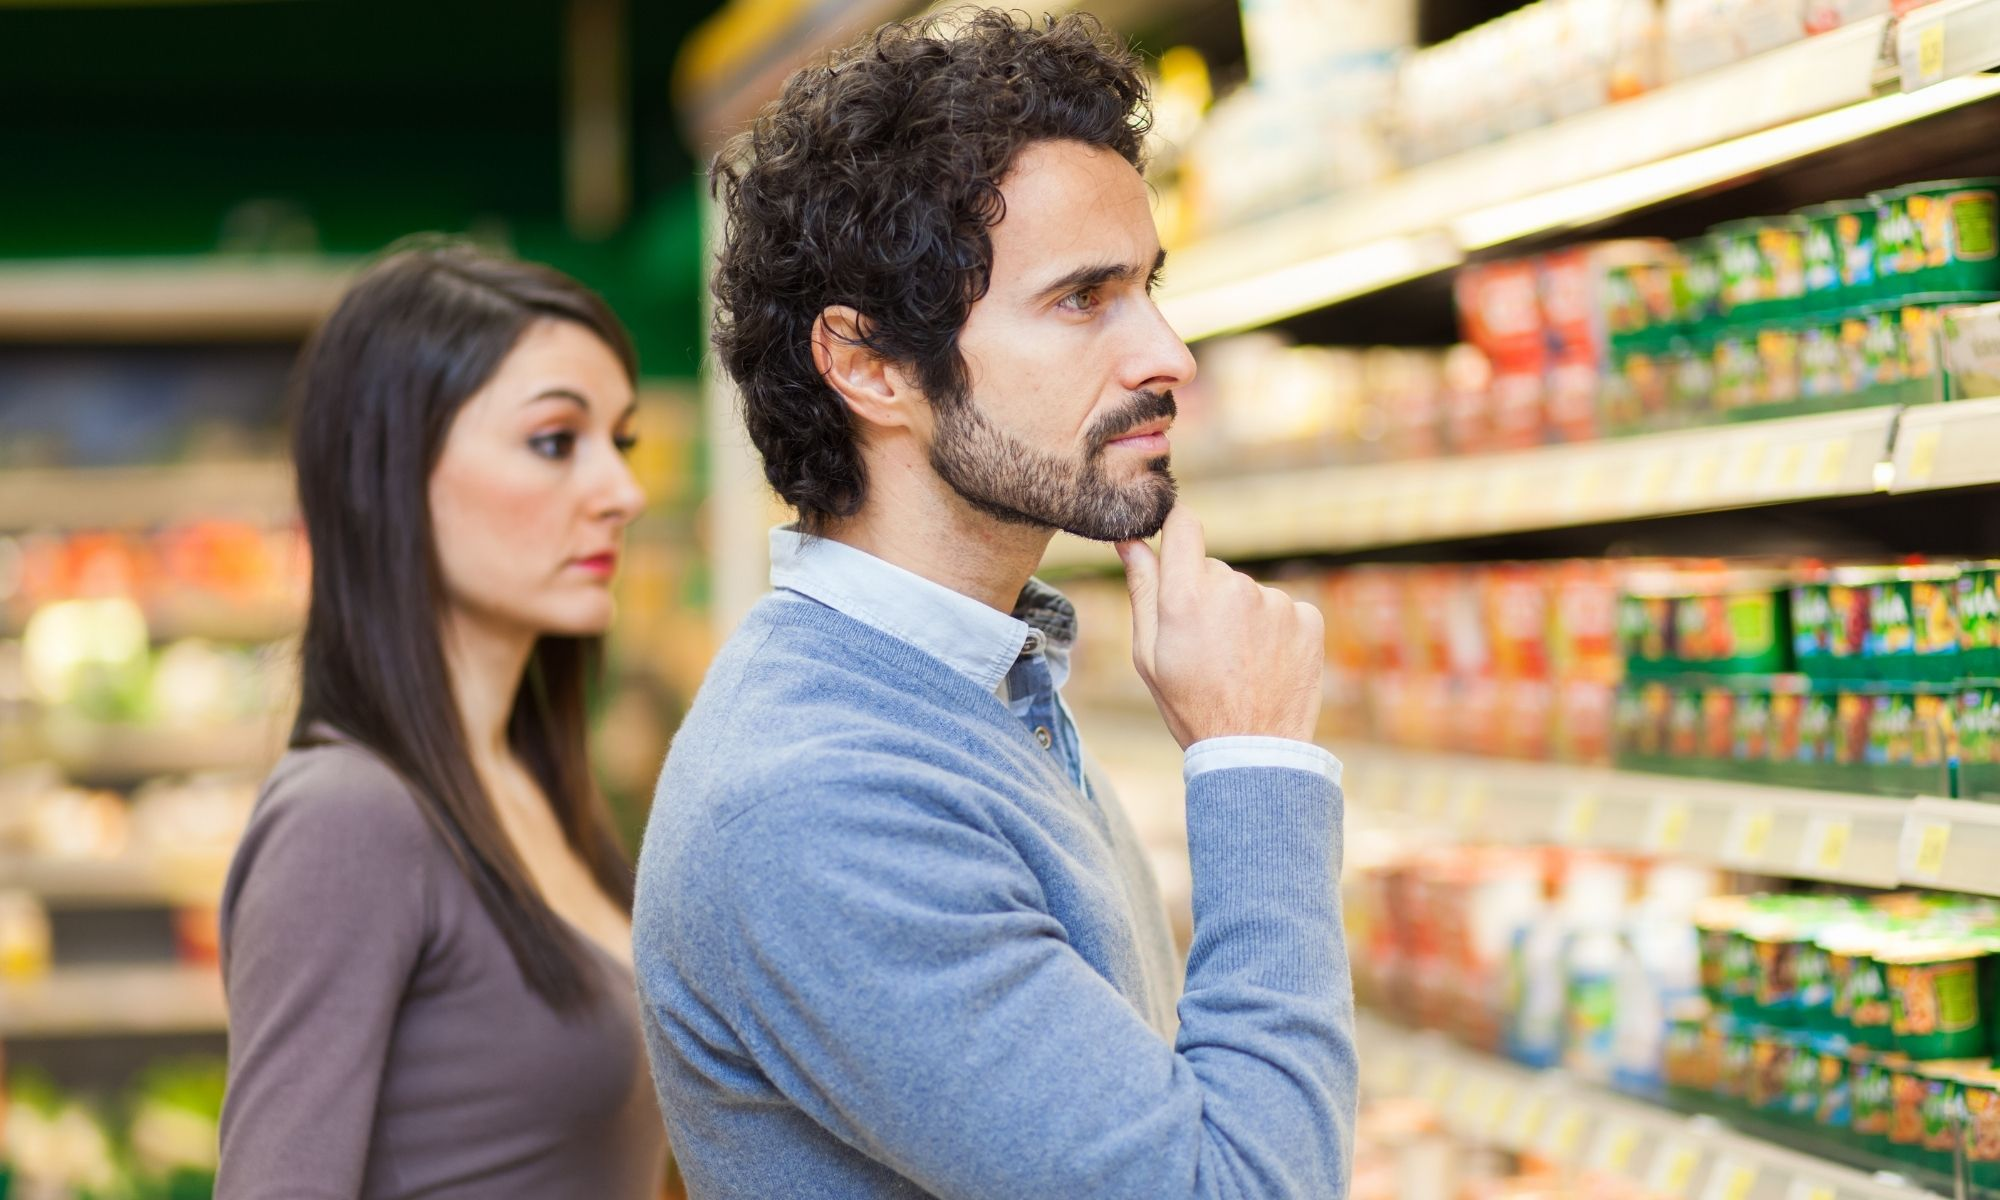 What To Know About Food Date Labels